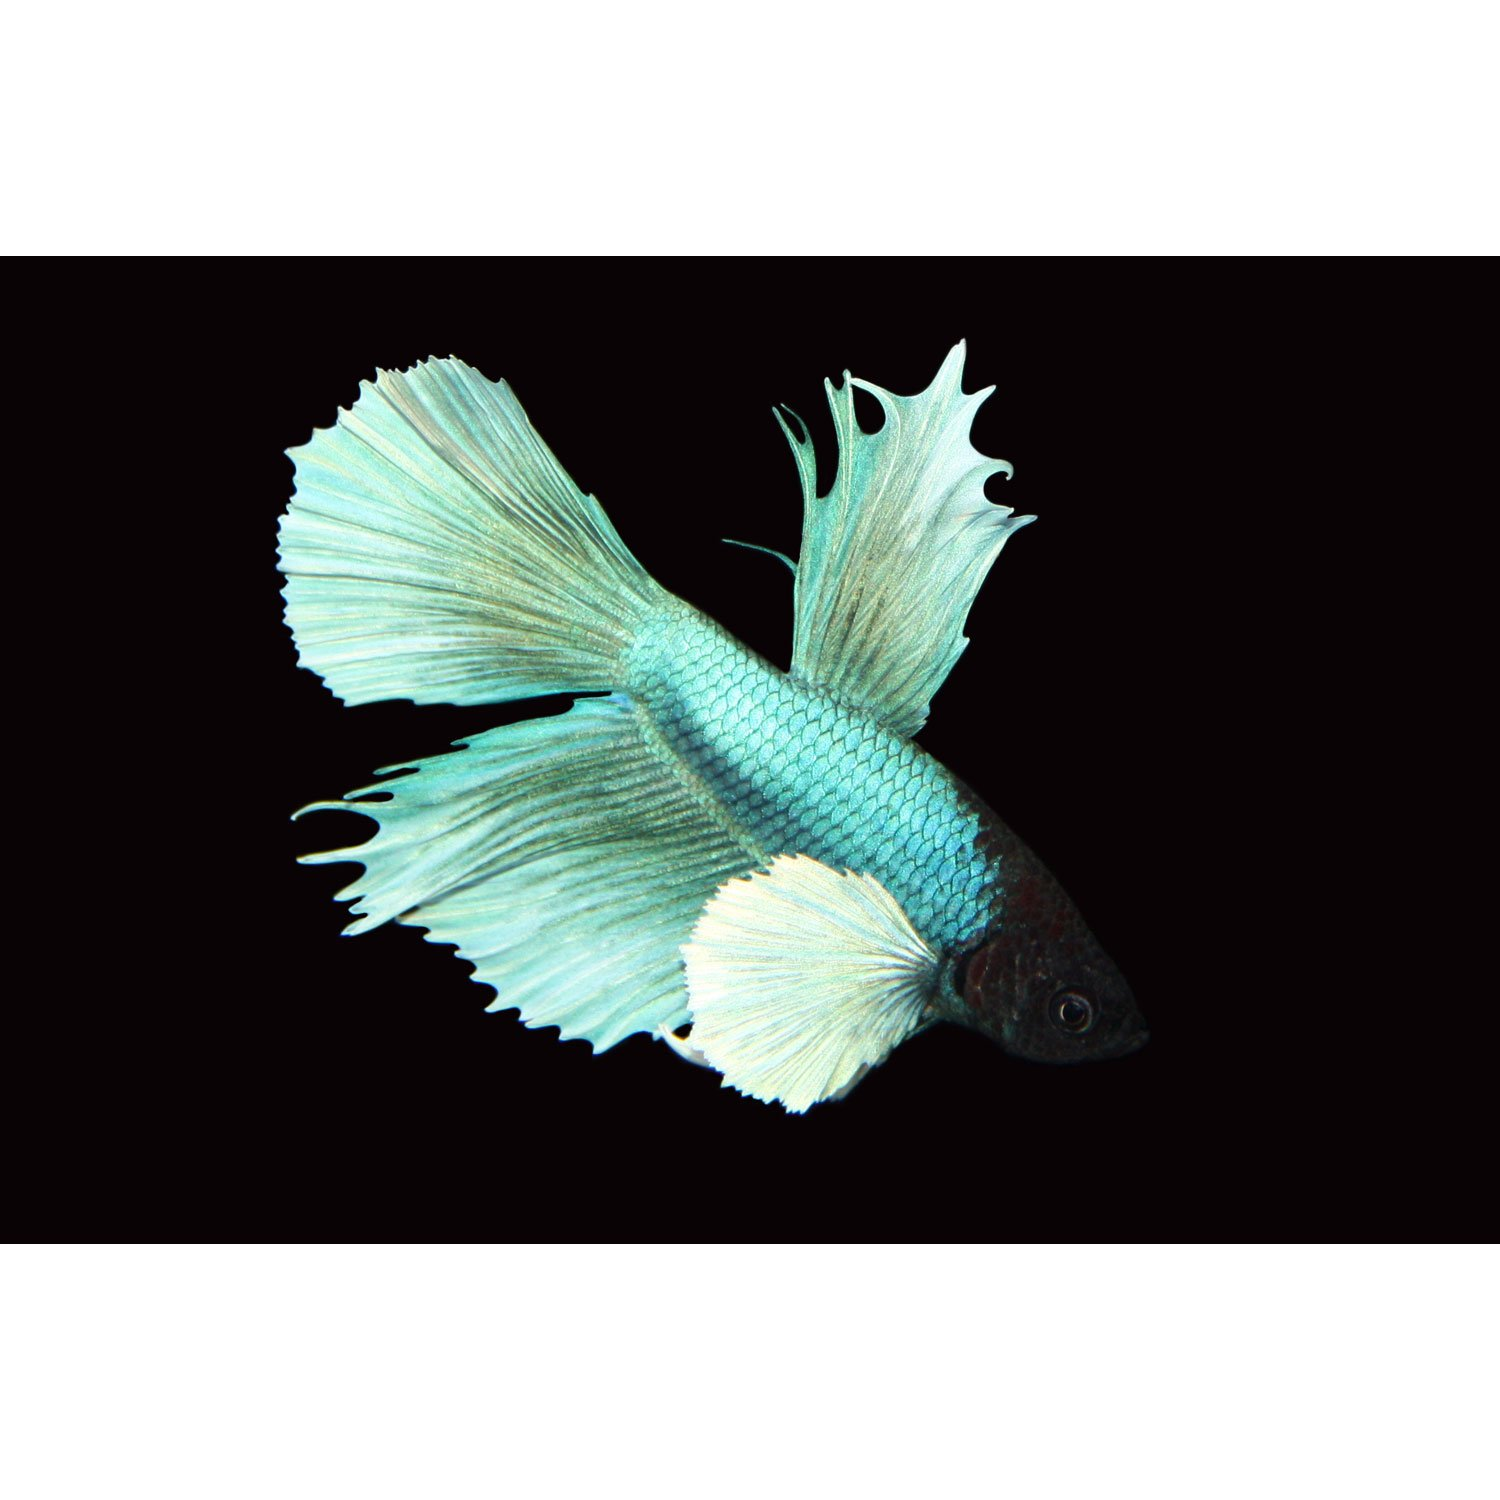 Fish aquarium for sale in lahore - Elephant Ear Delta Tail Betta